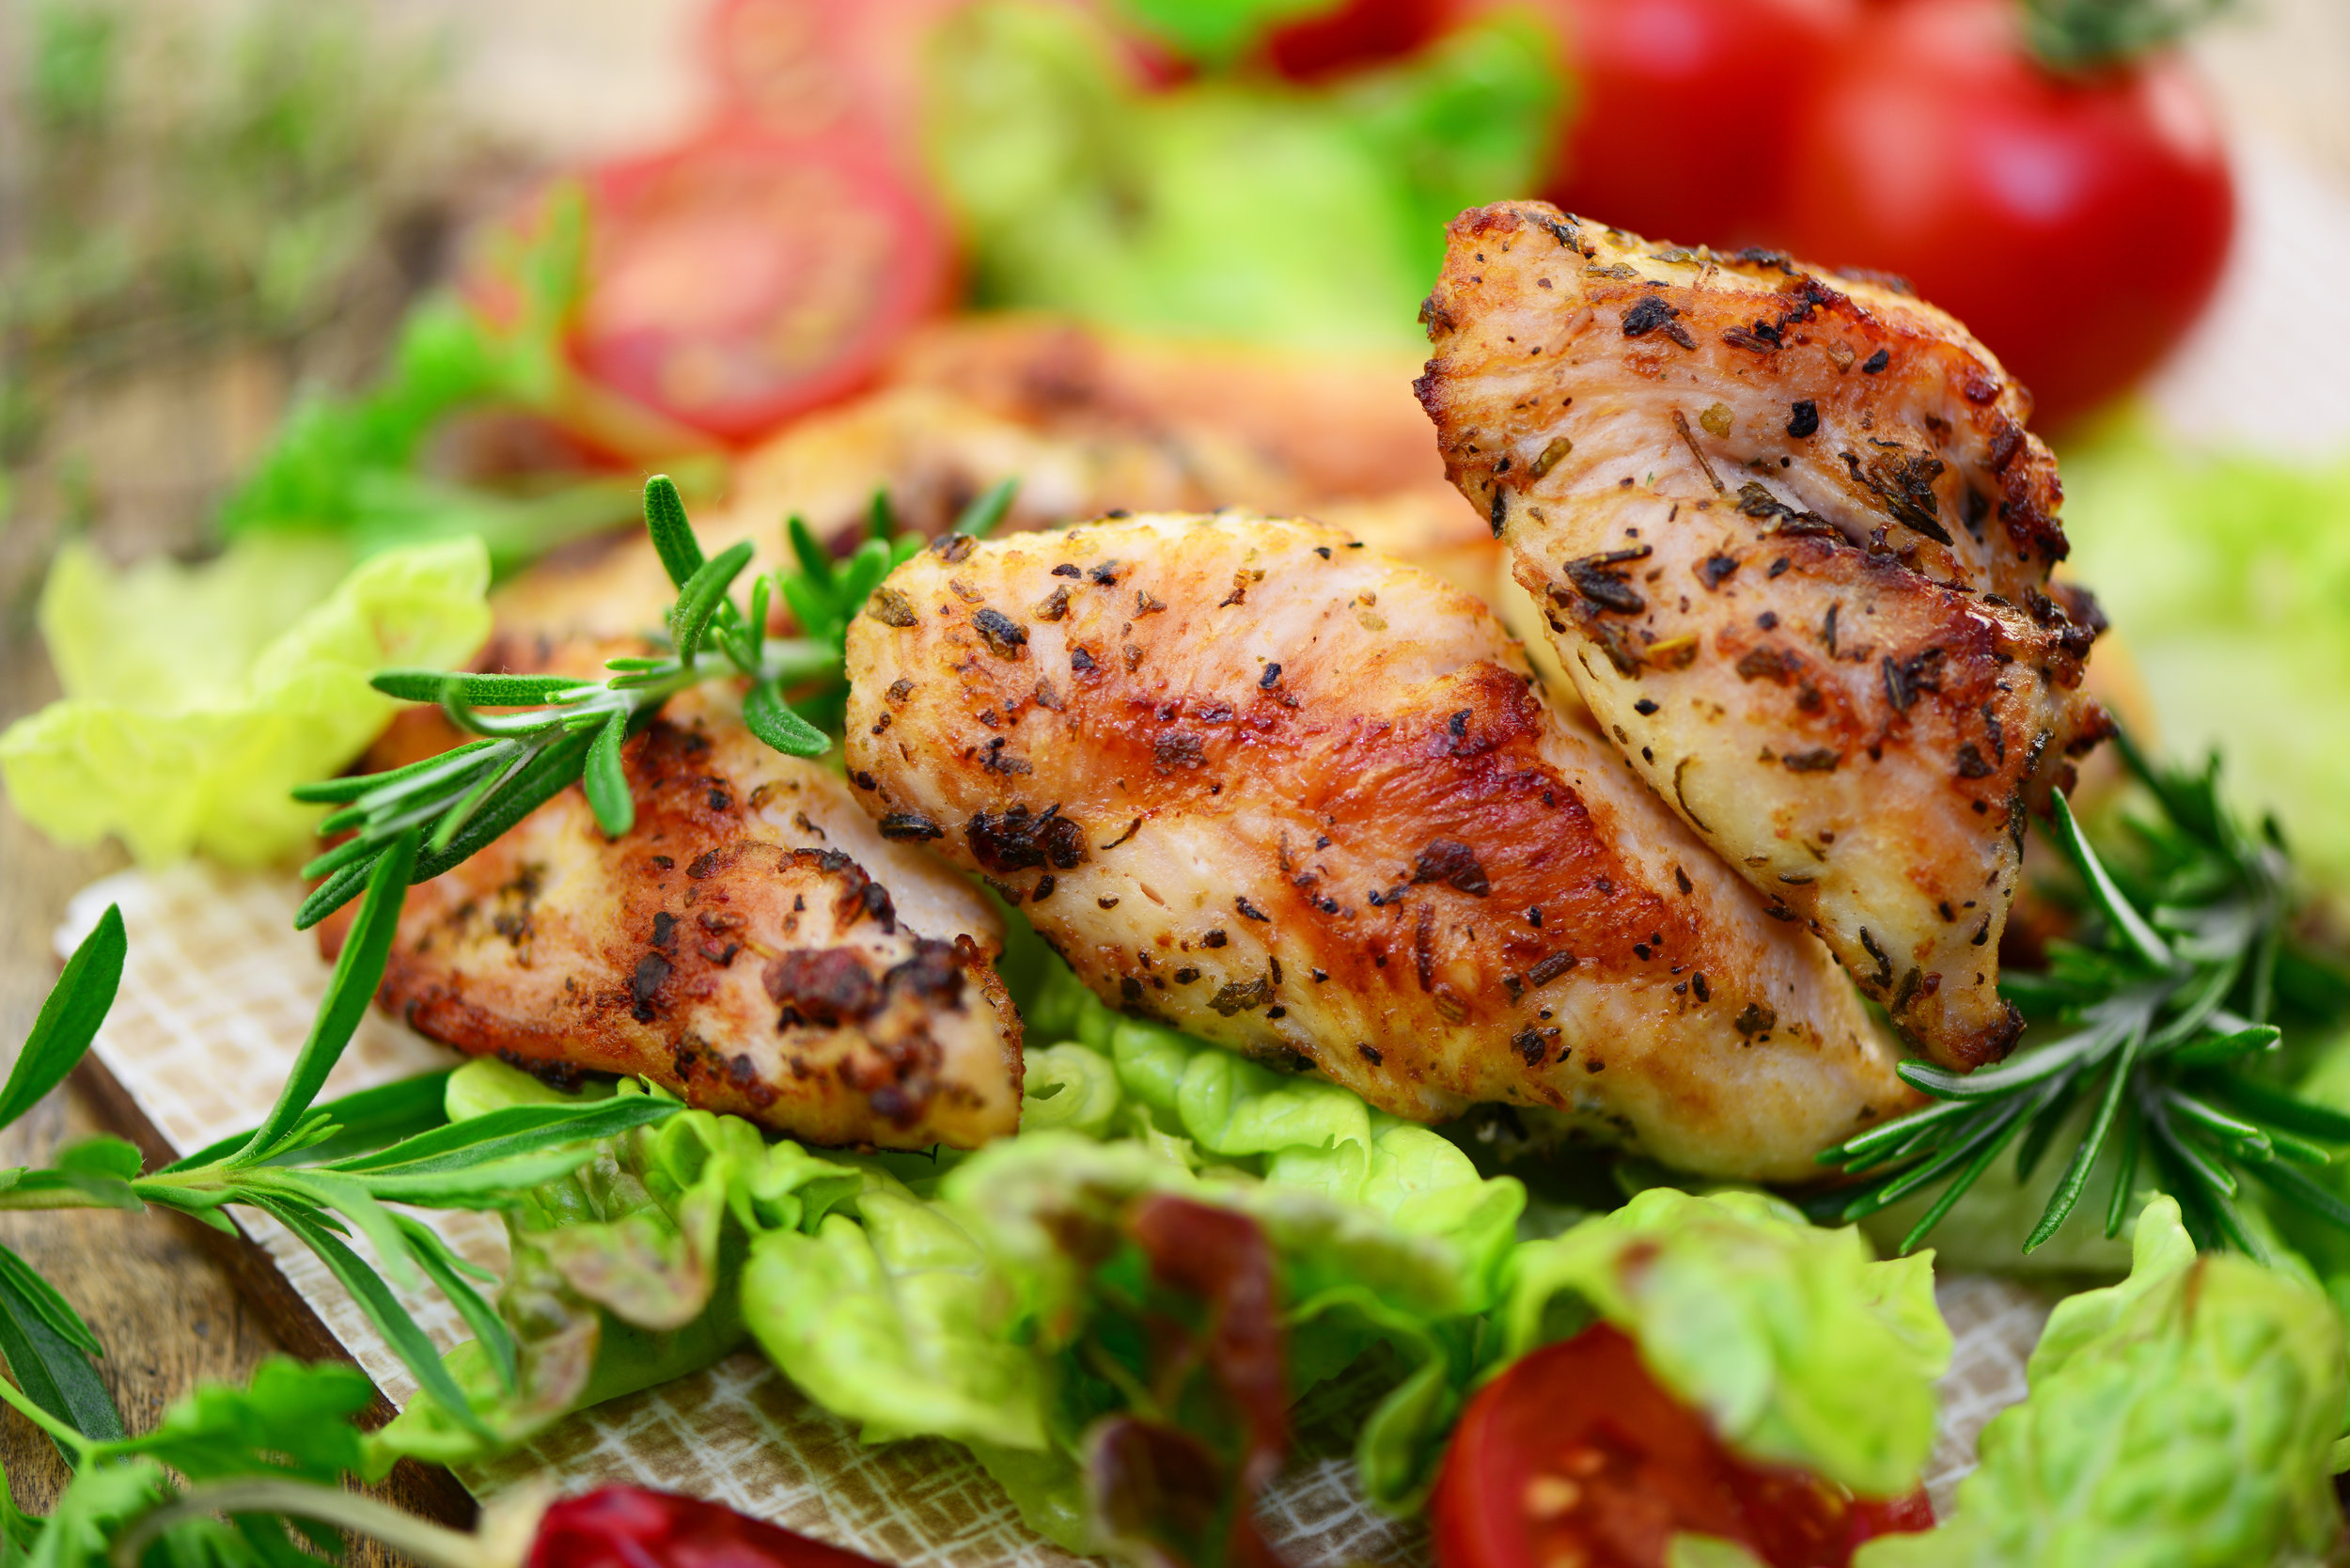 Chicken, avocado, tomato and lettuce wraps - A tasty meal for the whole family to share.Eat straight away and prepare to get messy. Double the quantities and invite some friends around!